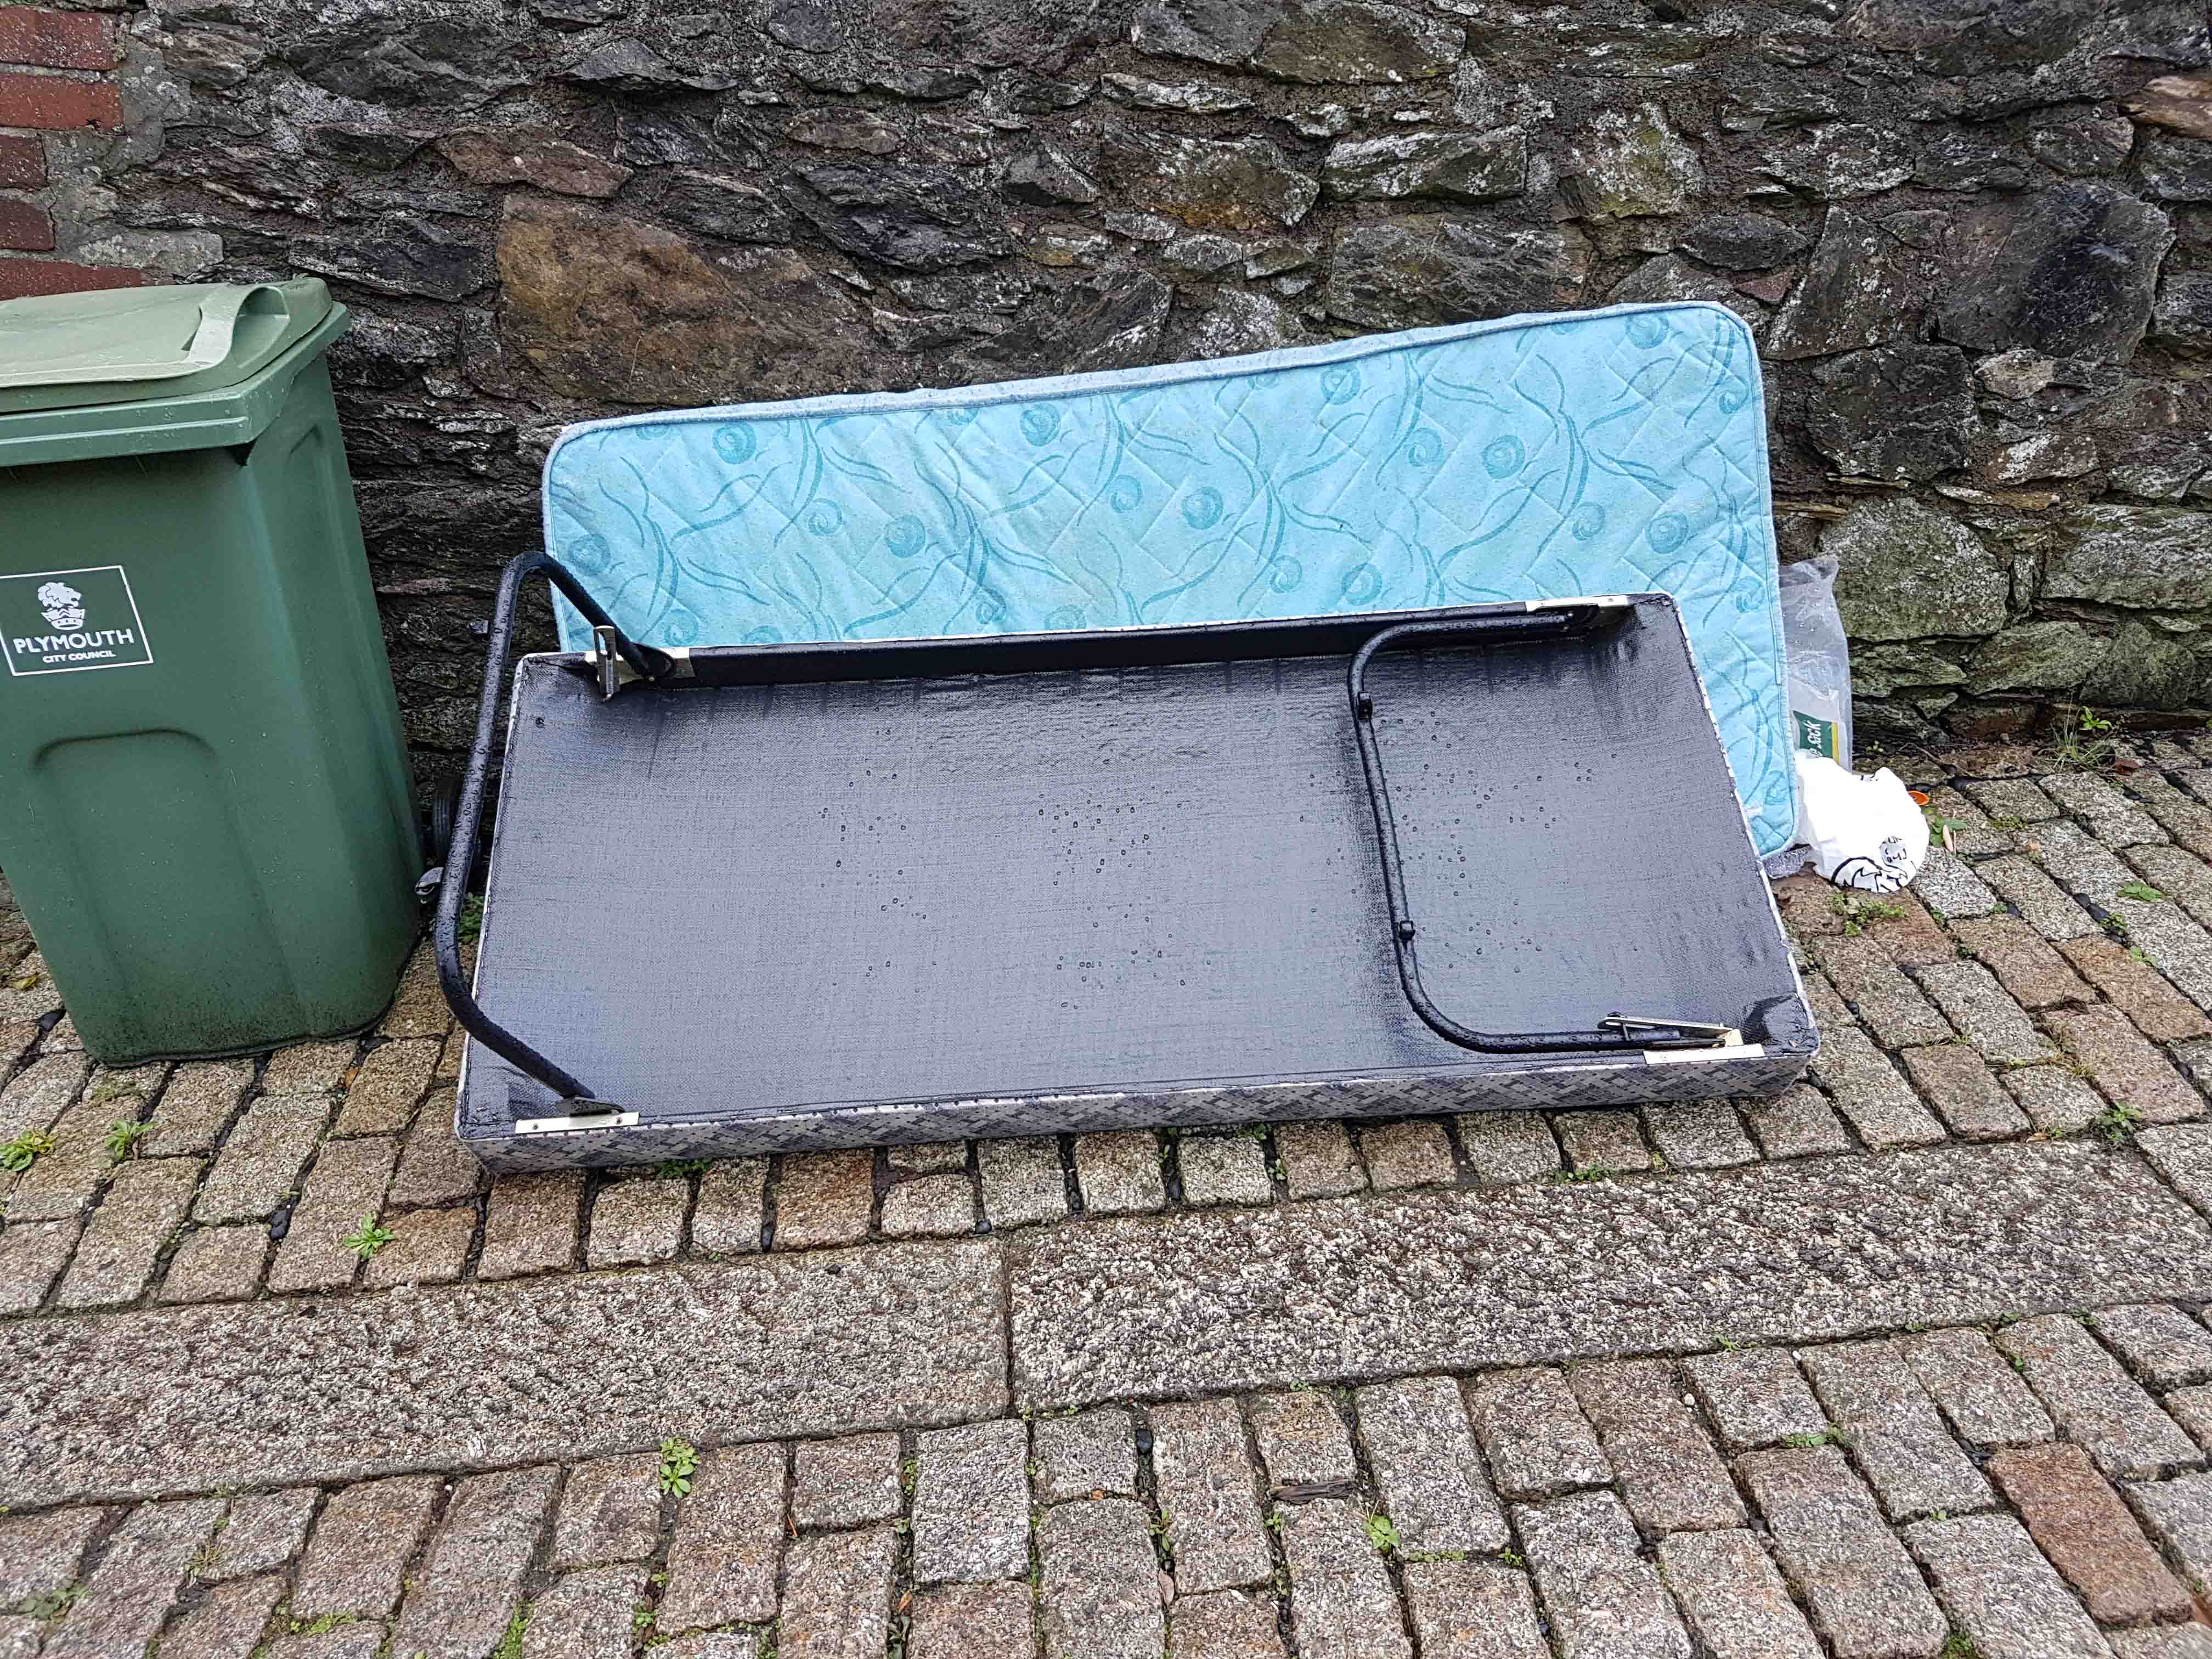 Image of fly tipped bed